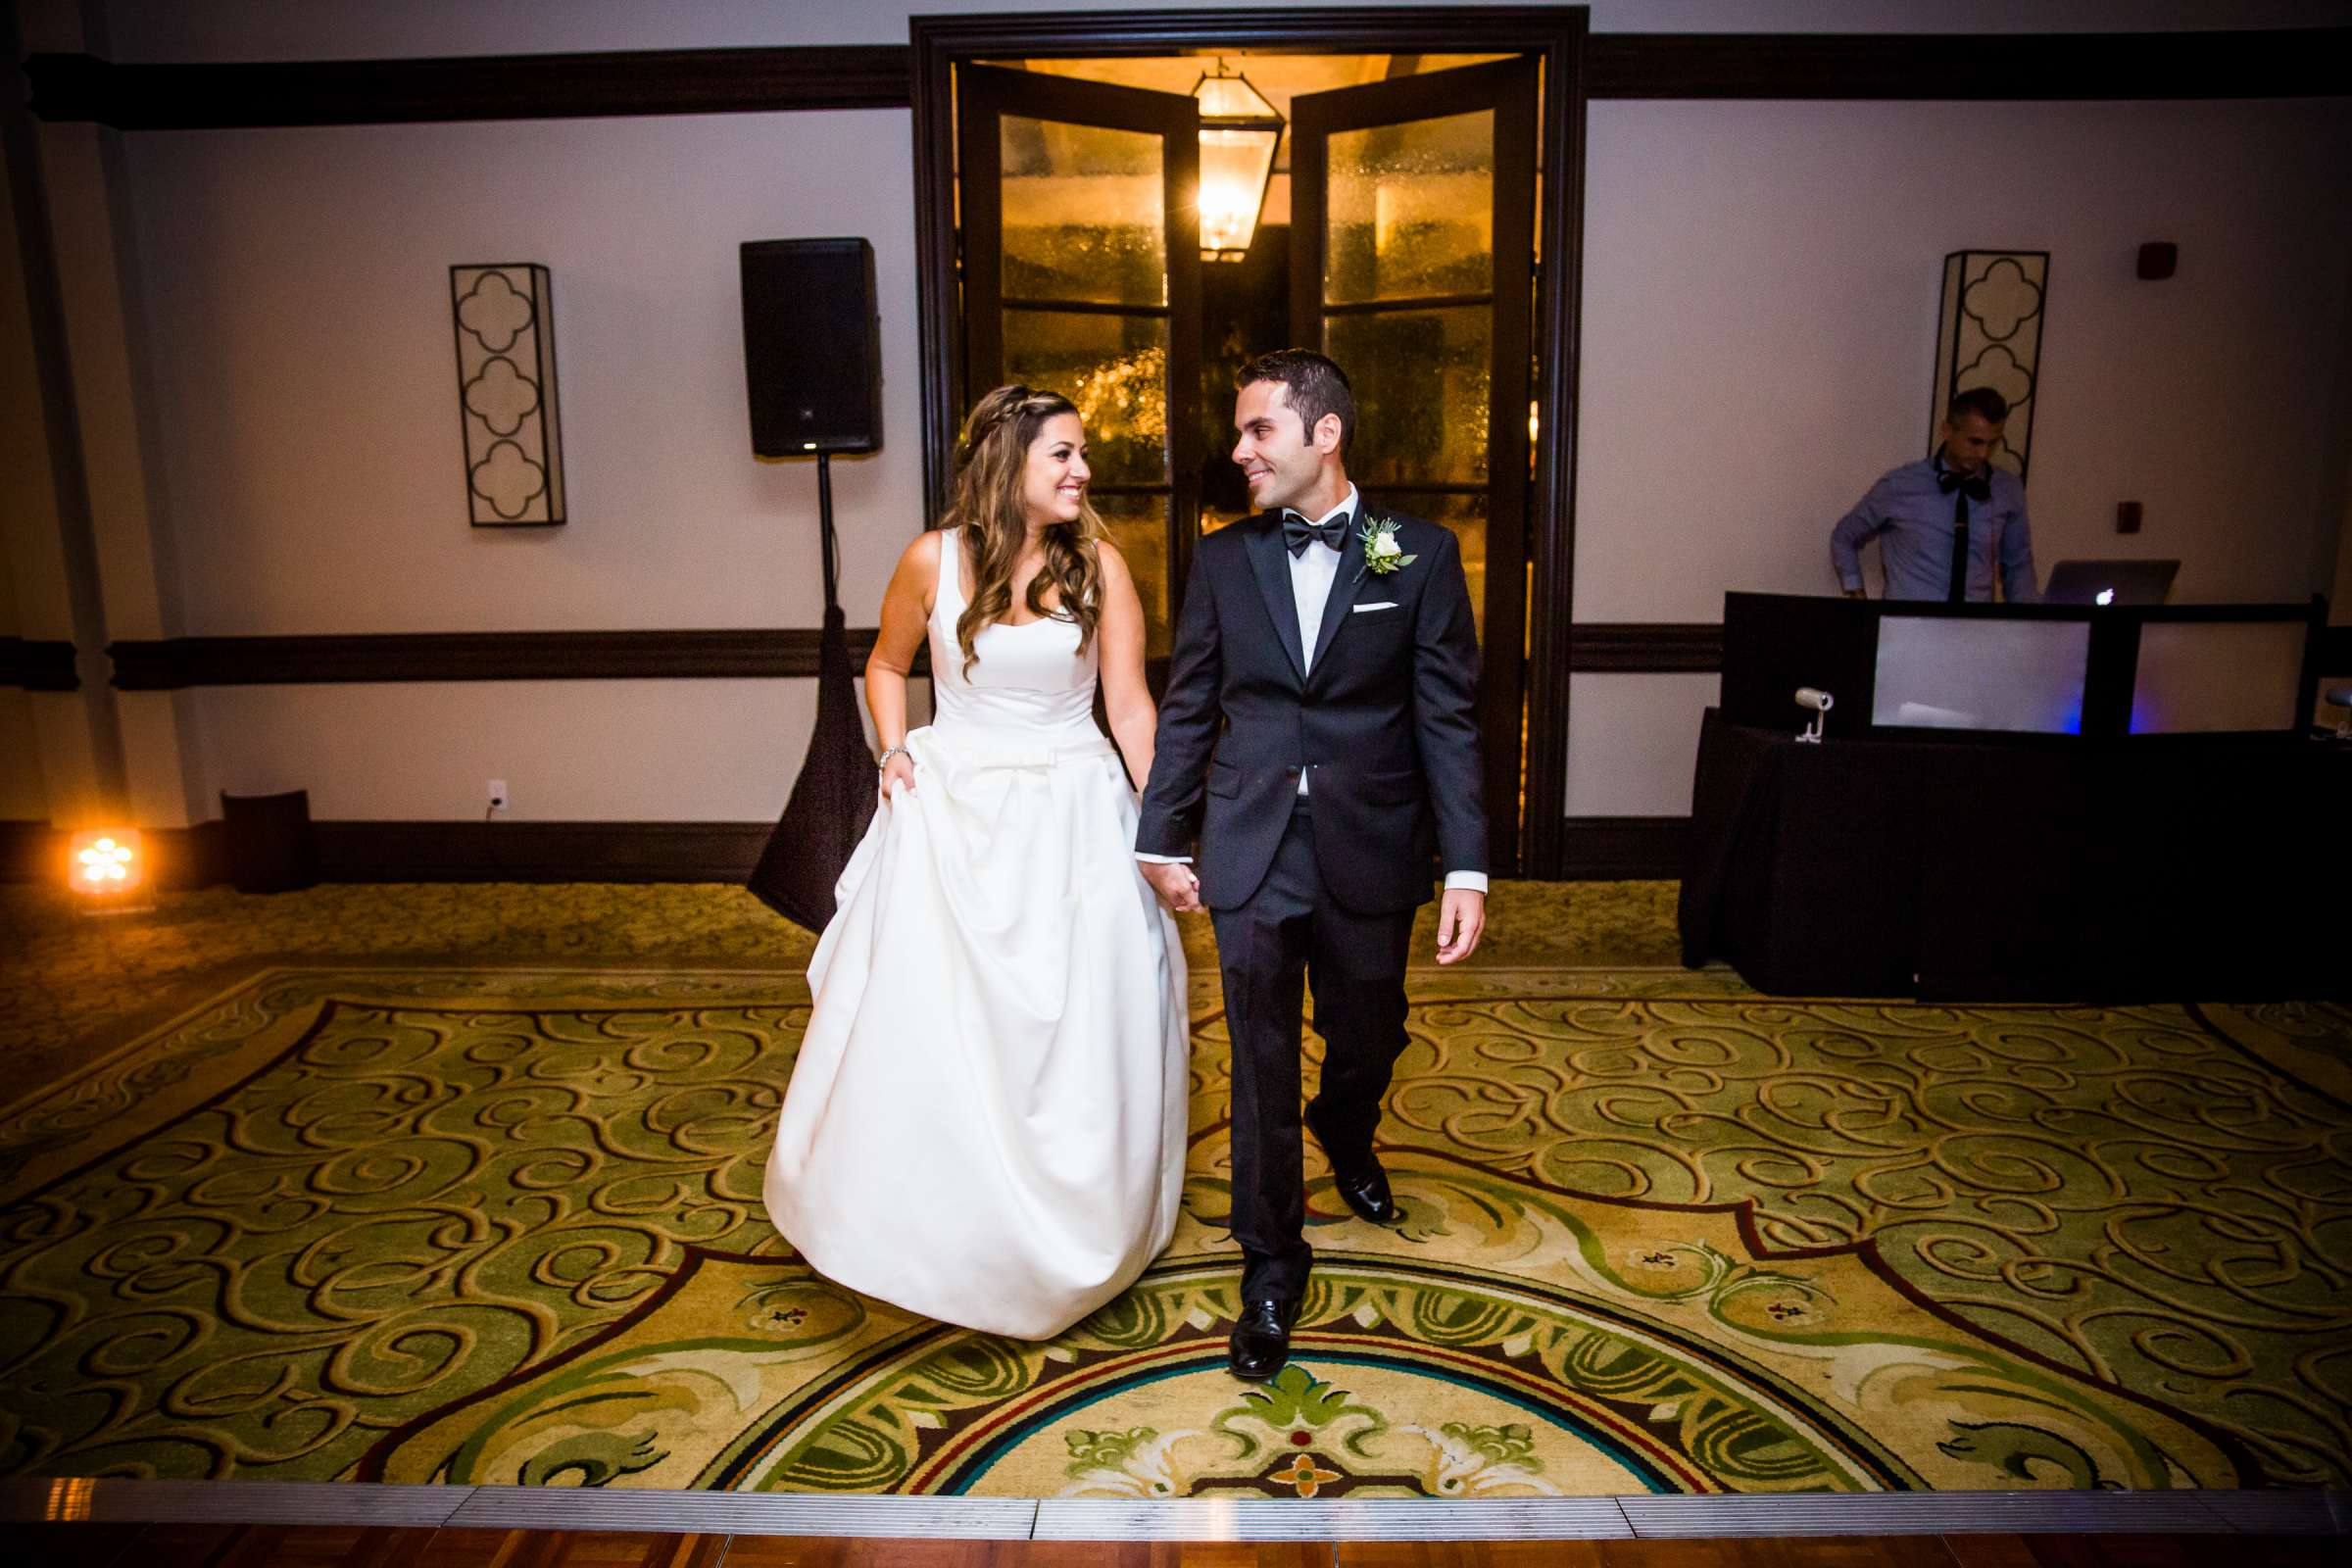 Rancho Bernardo Inn Wedding coordinated by Très Chic Events, Stefania and Nicholas Wedding Photo #57 by True Photography